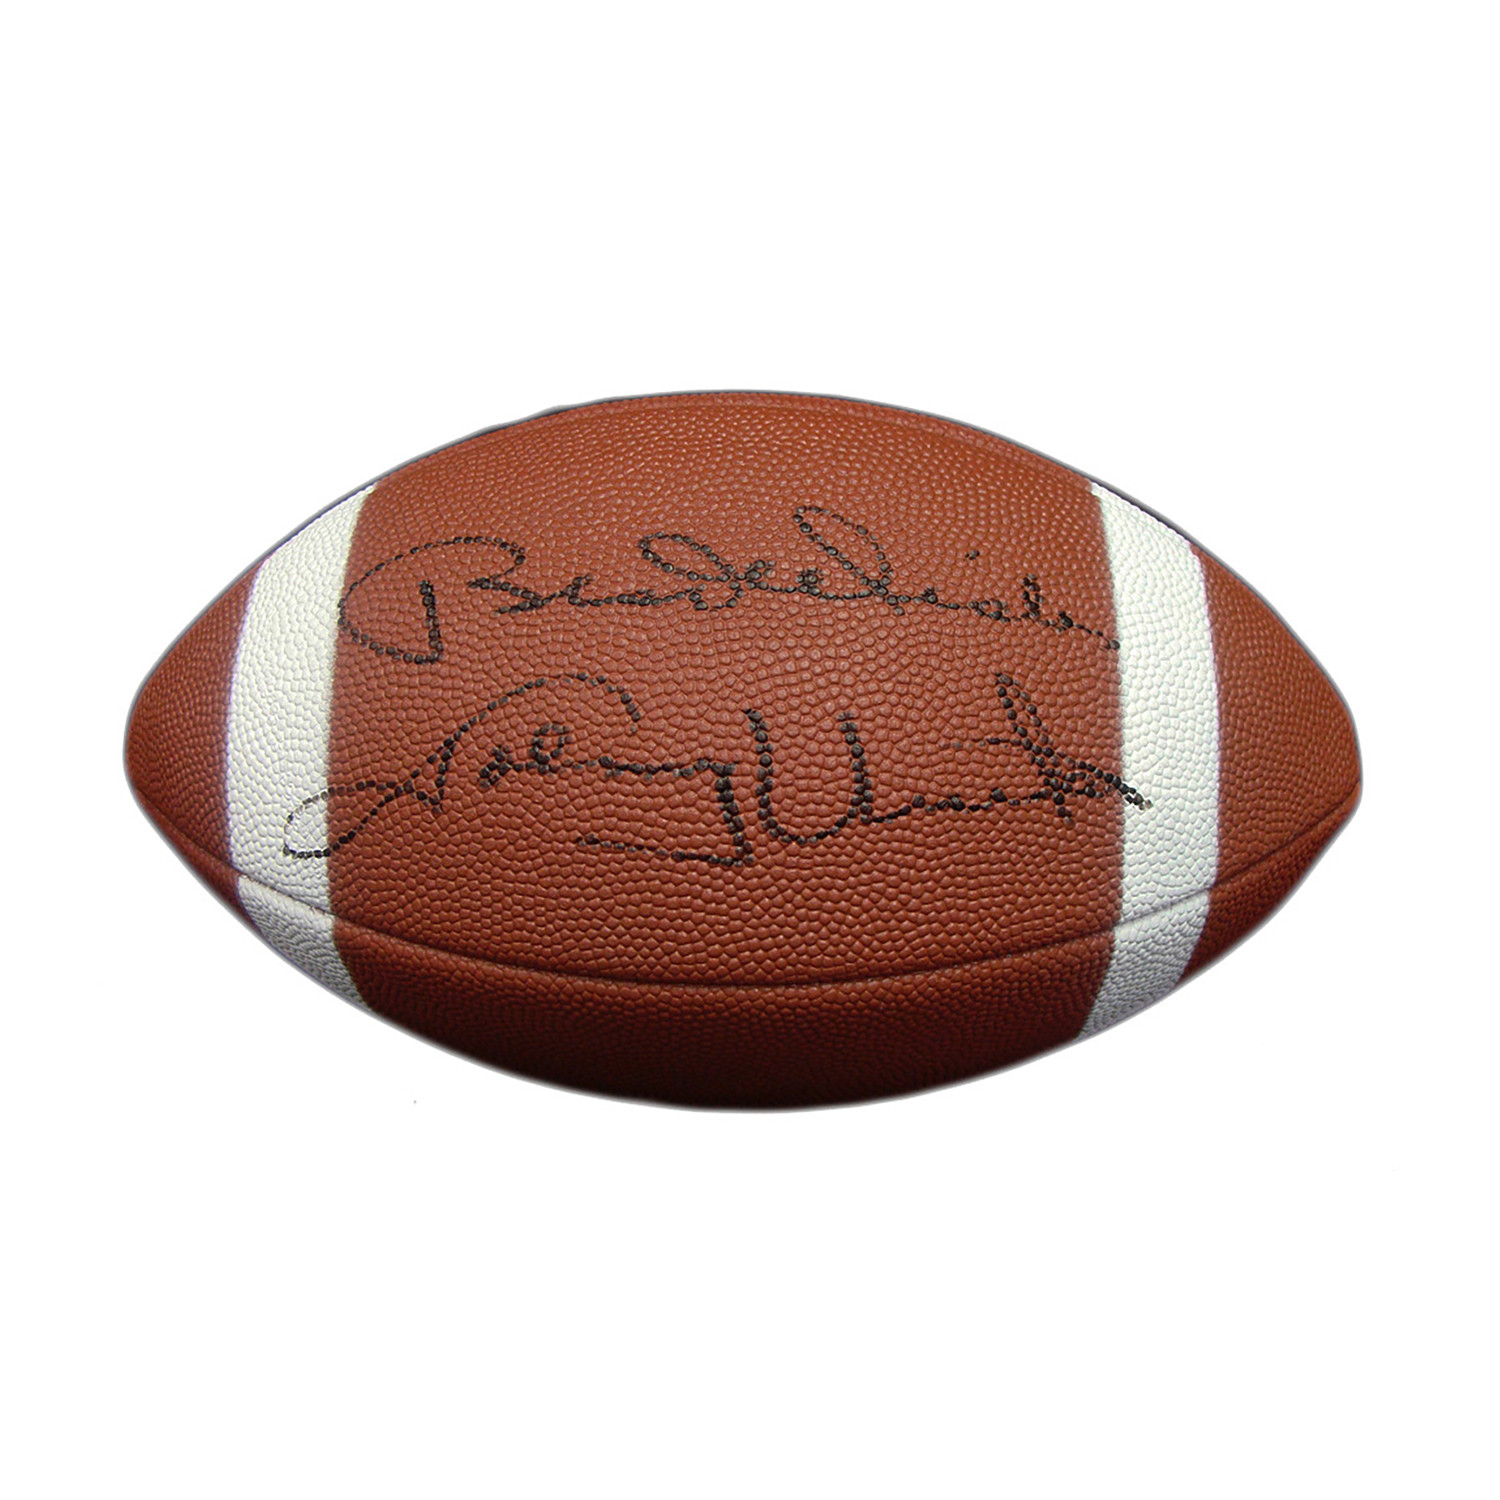 new product 6826c 064e3 Johnny Unitas Signed Football - Brigandi Collectibles ...